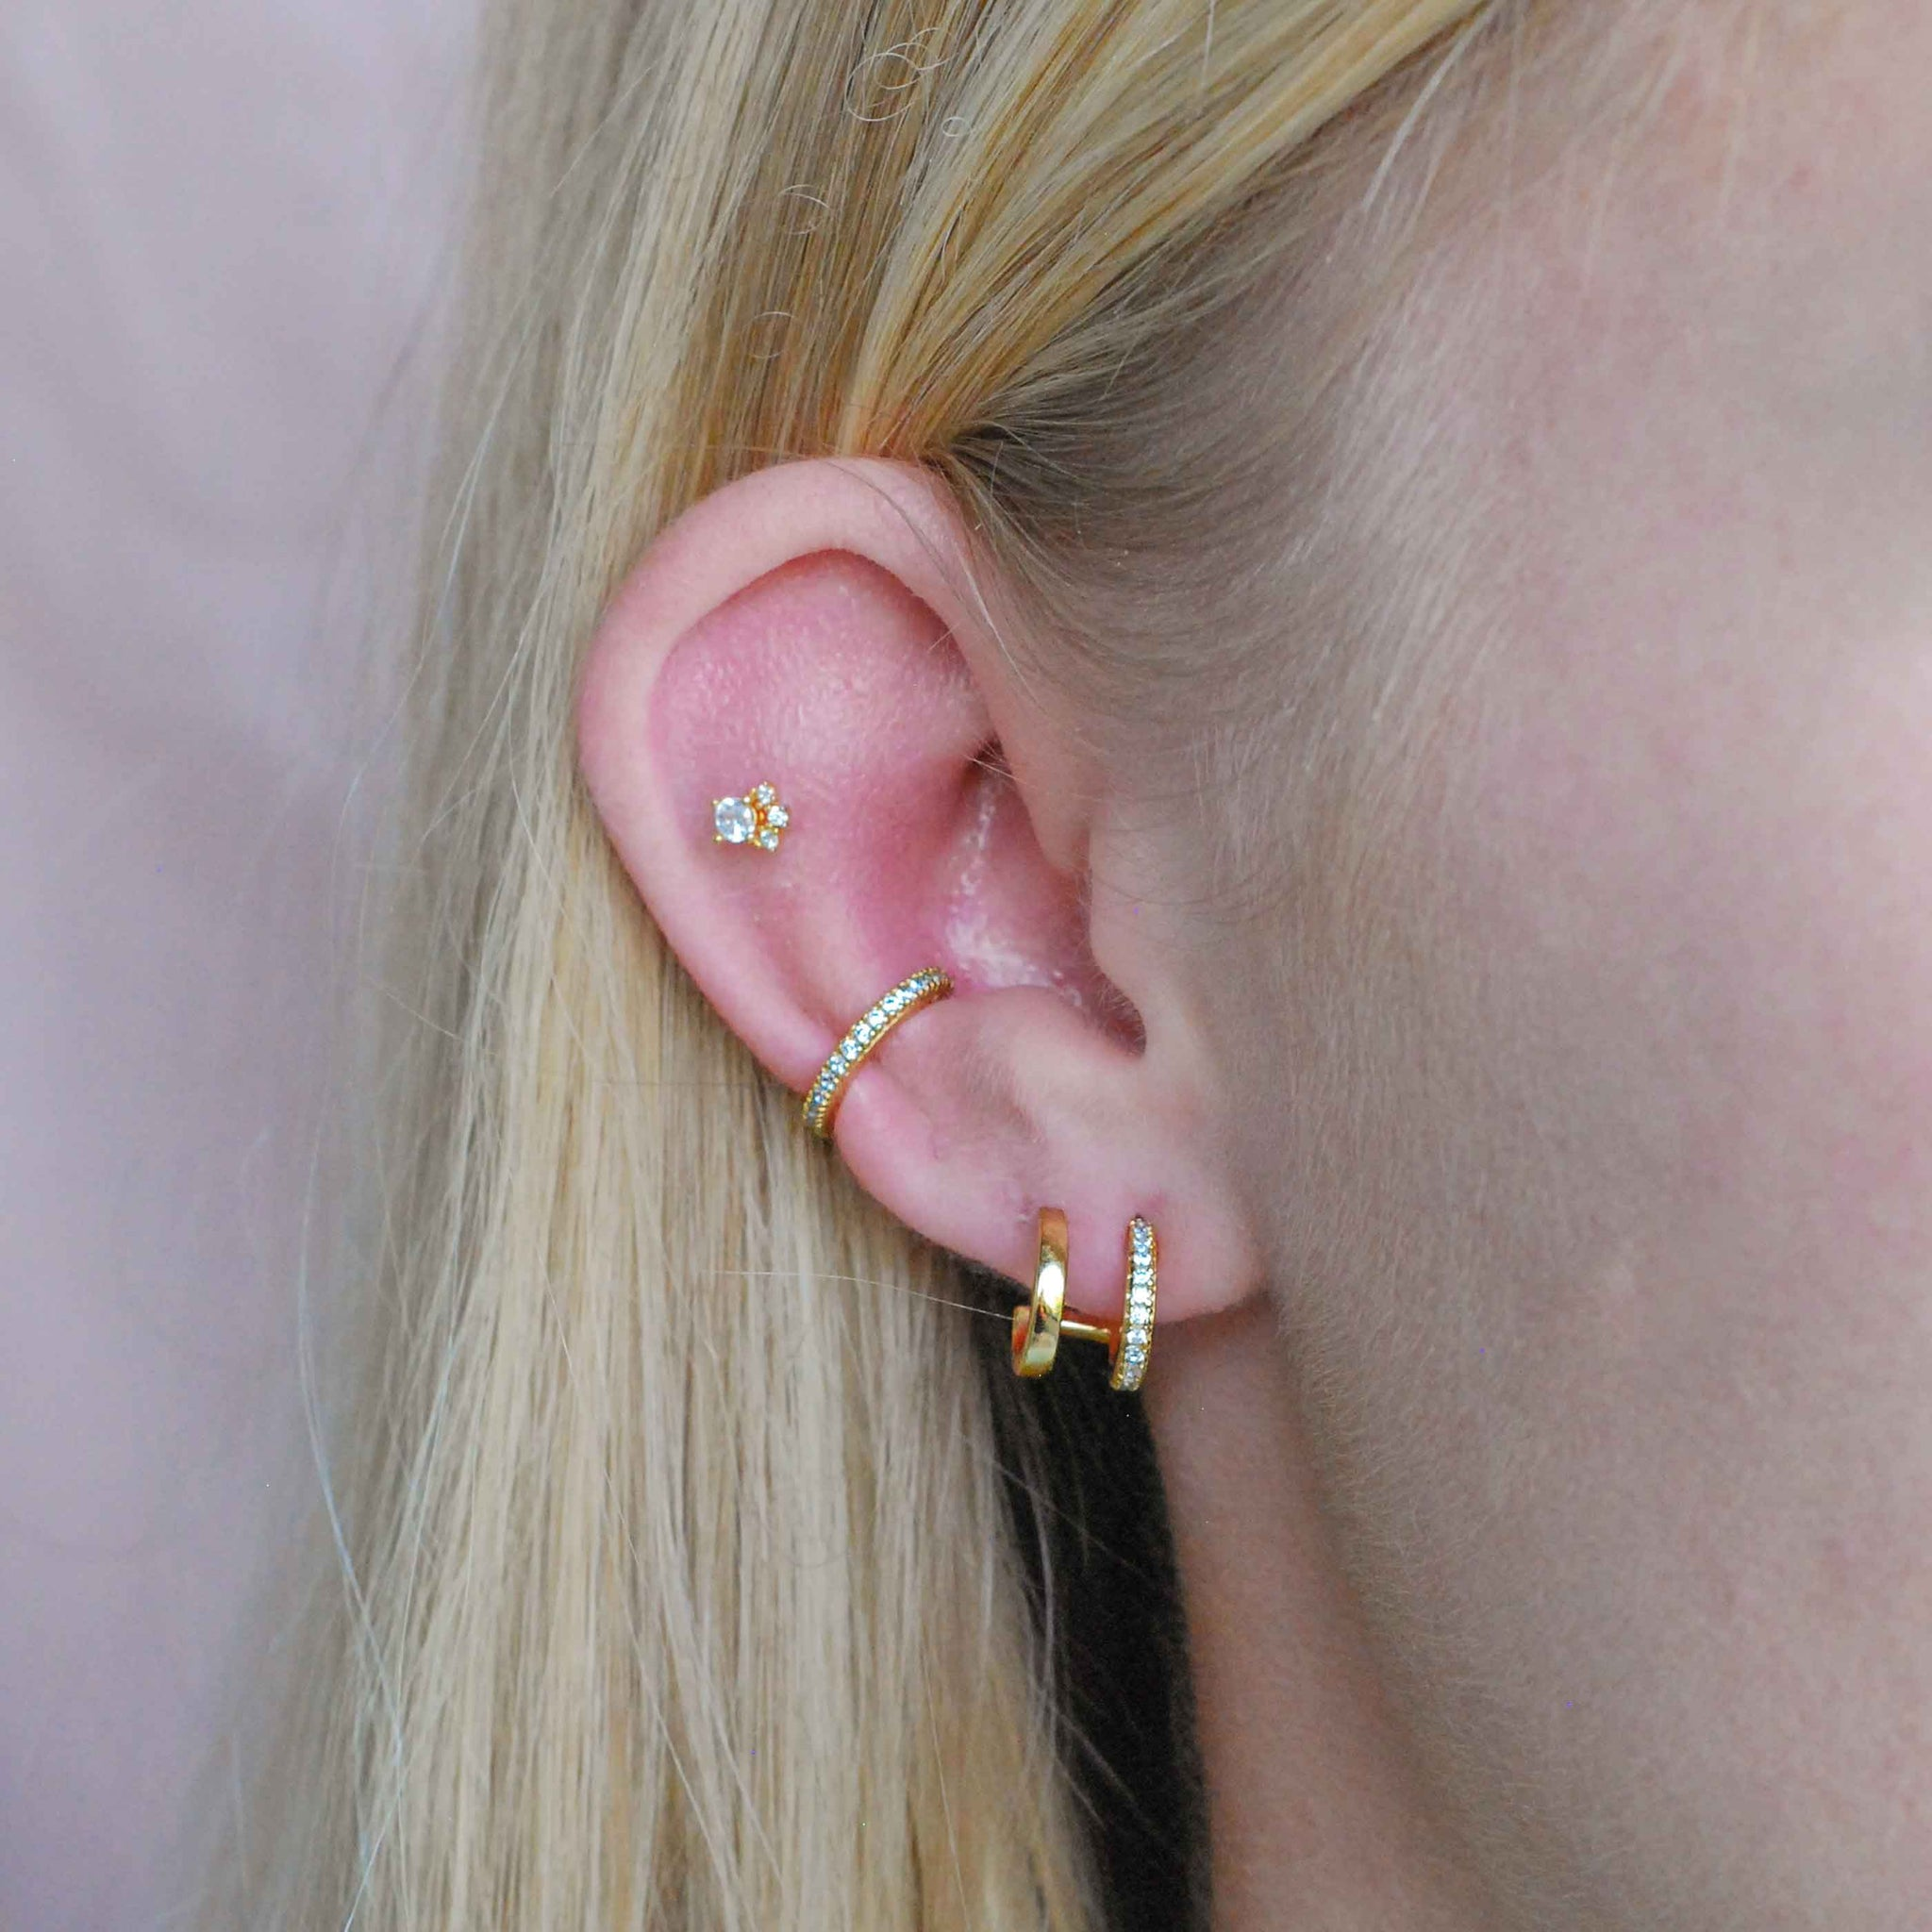 Illusion Stud Earrings in Gold worn with ear cuff